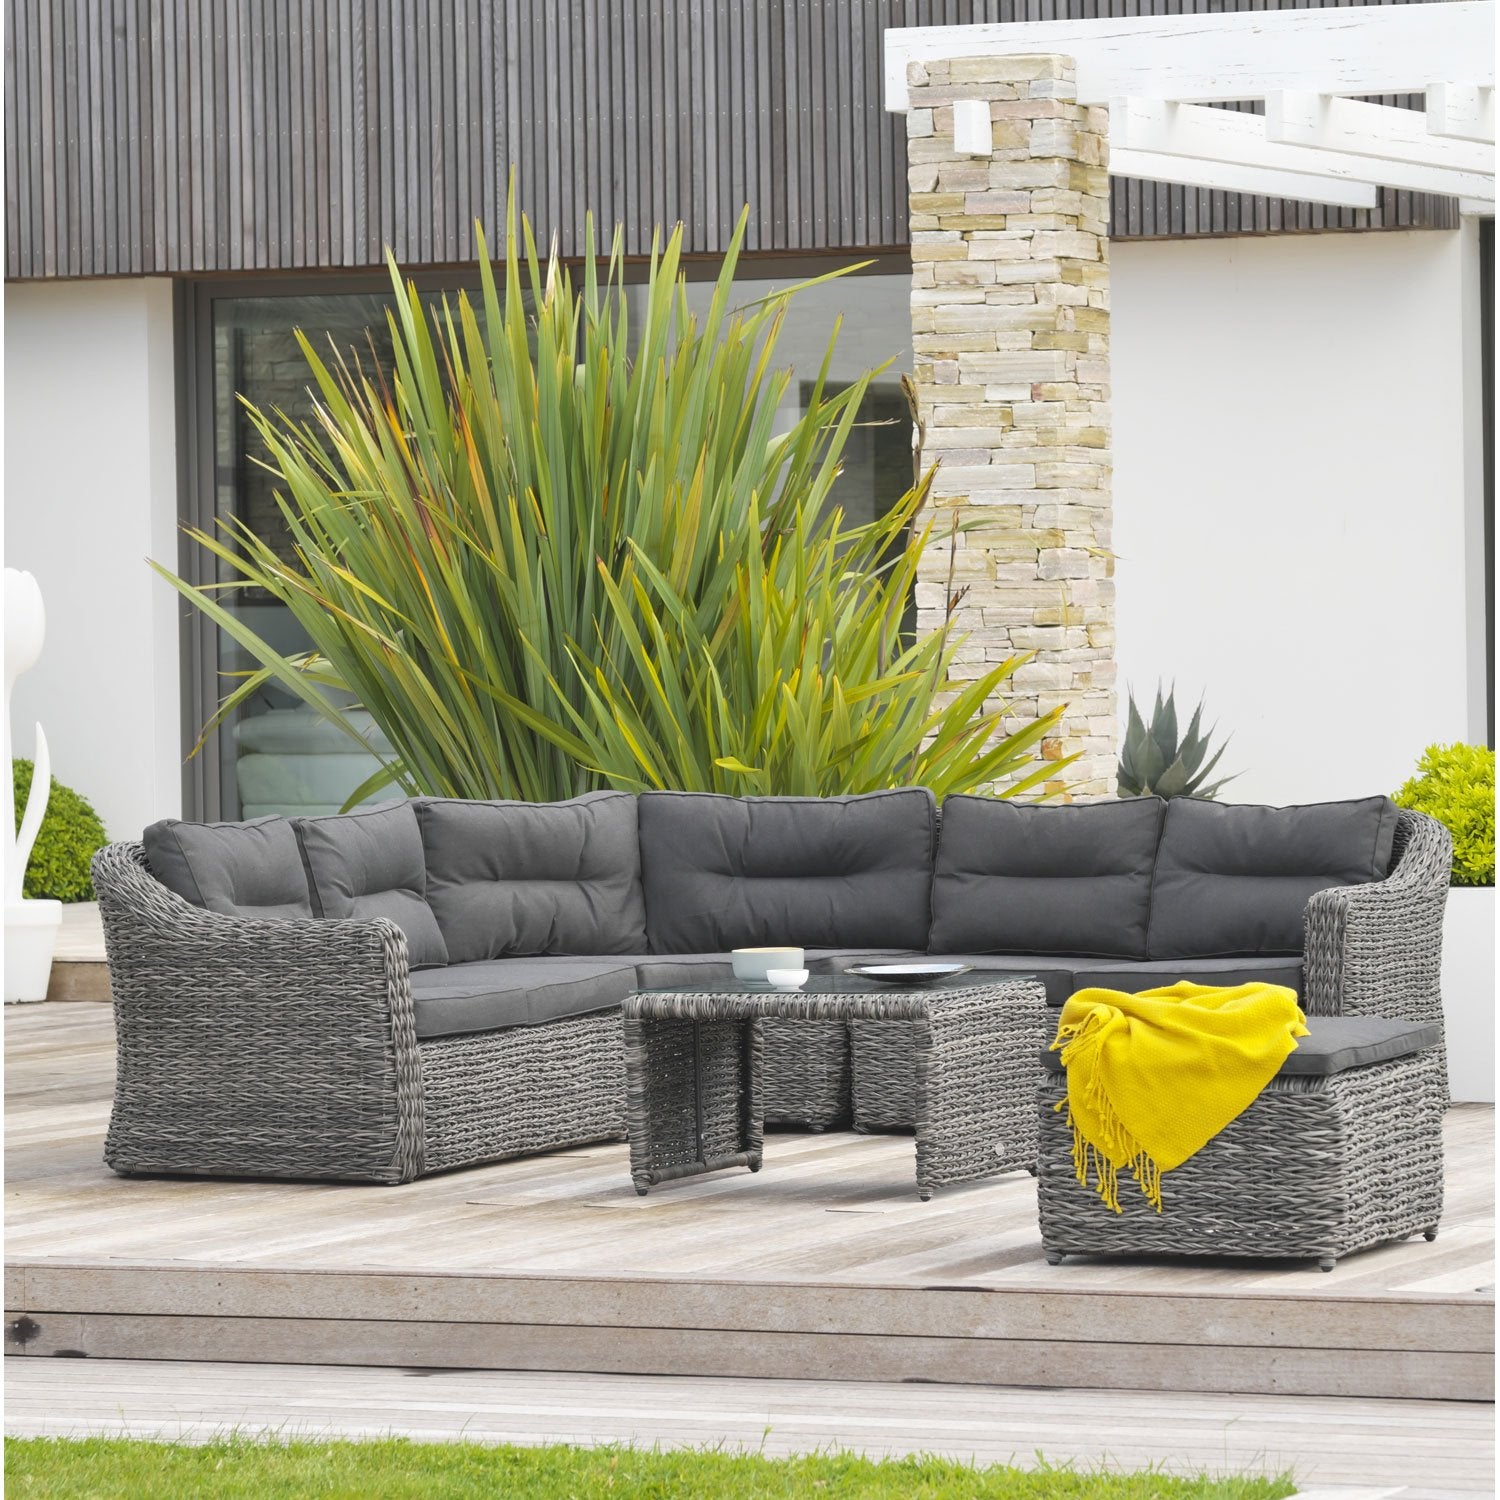 salon bas de jardin bahamas r sine tress e gris 6 personnes leroy merlin. Black Bedroom Furniture Sets. Home Design Ideas